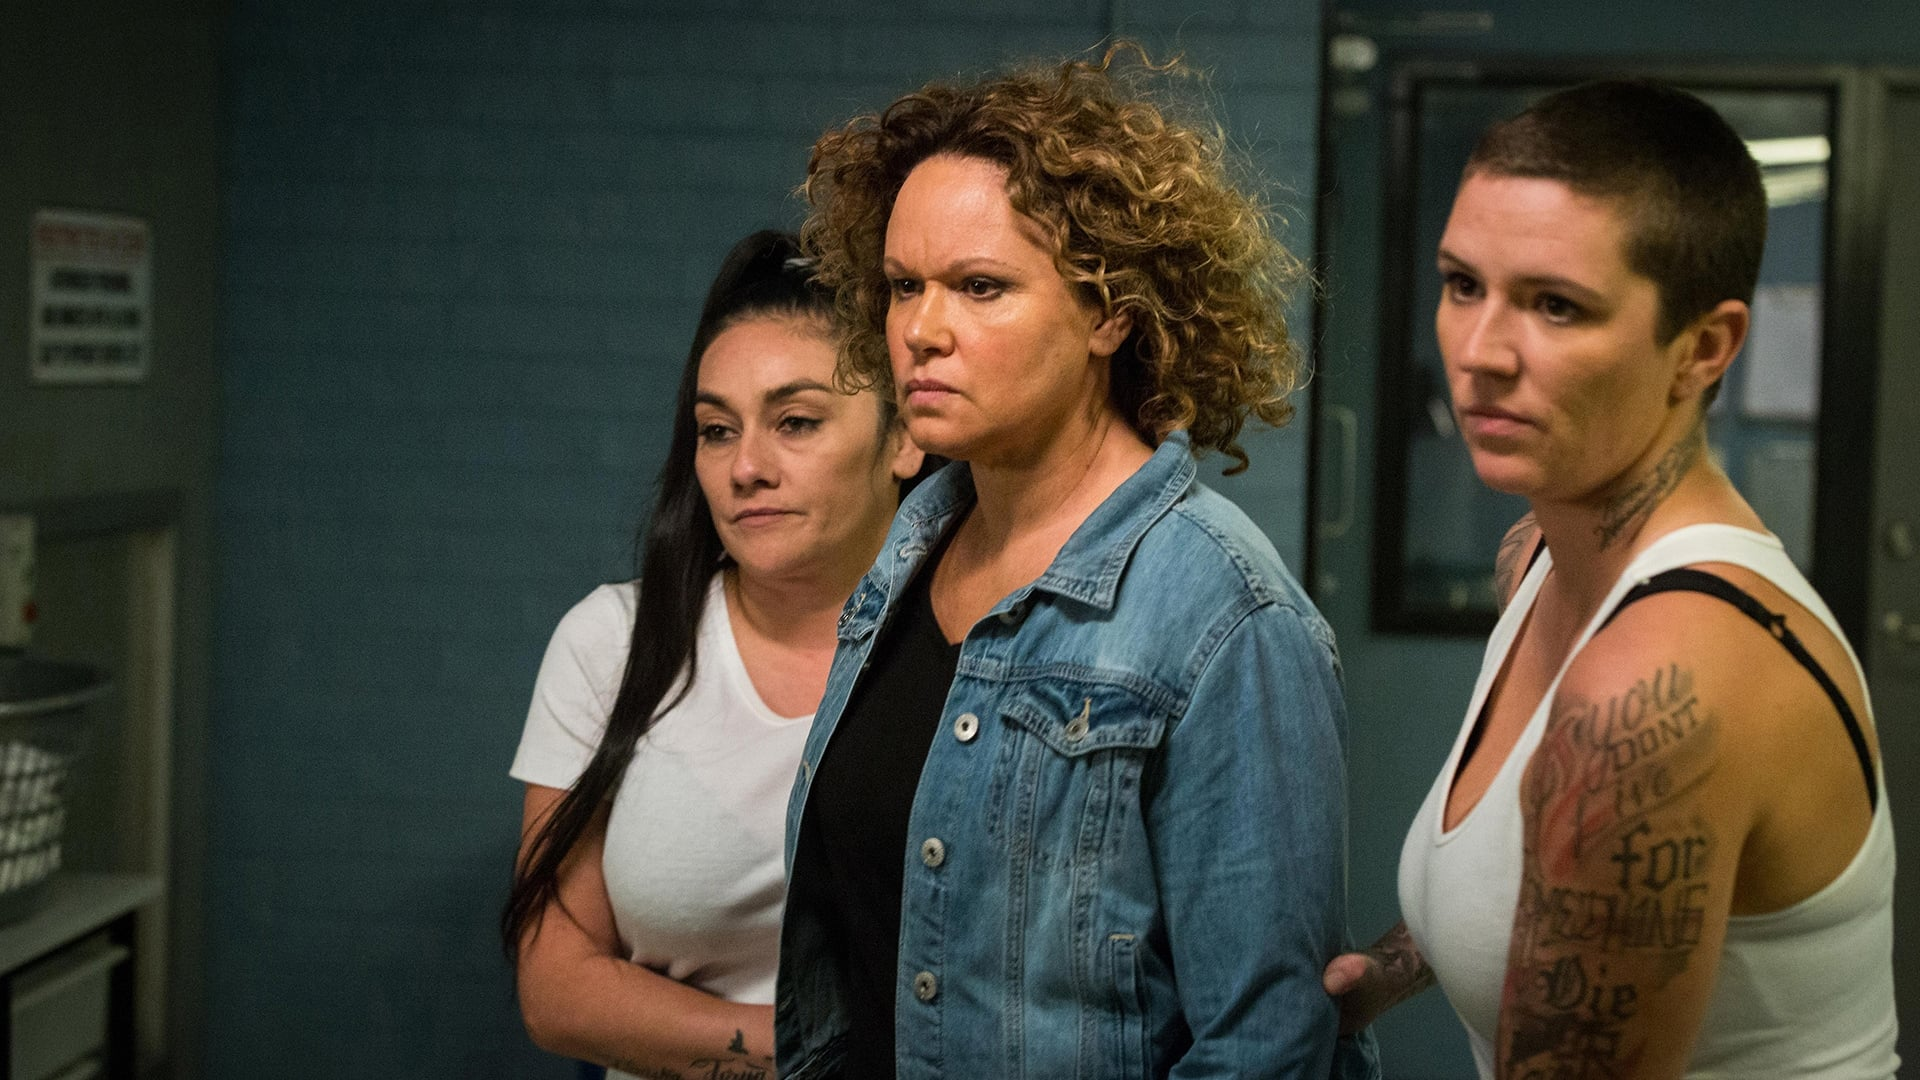 Watch wentworth season 1 episode 1 - bea smith is taken to gaol after attempting to murder her violent, rapist husband and is immediately taken watch wentworth season 01 episode 01 online free.